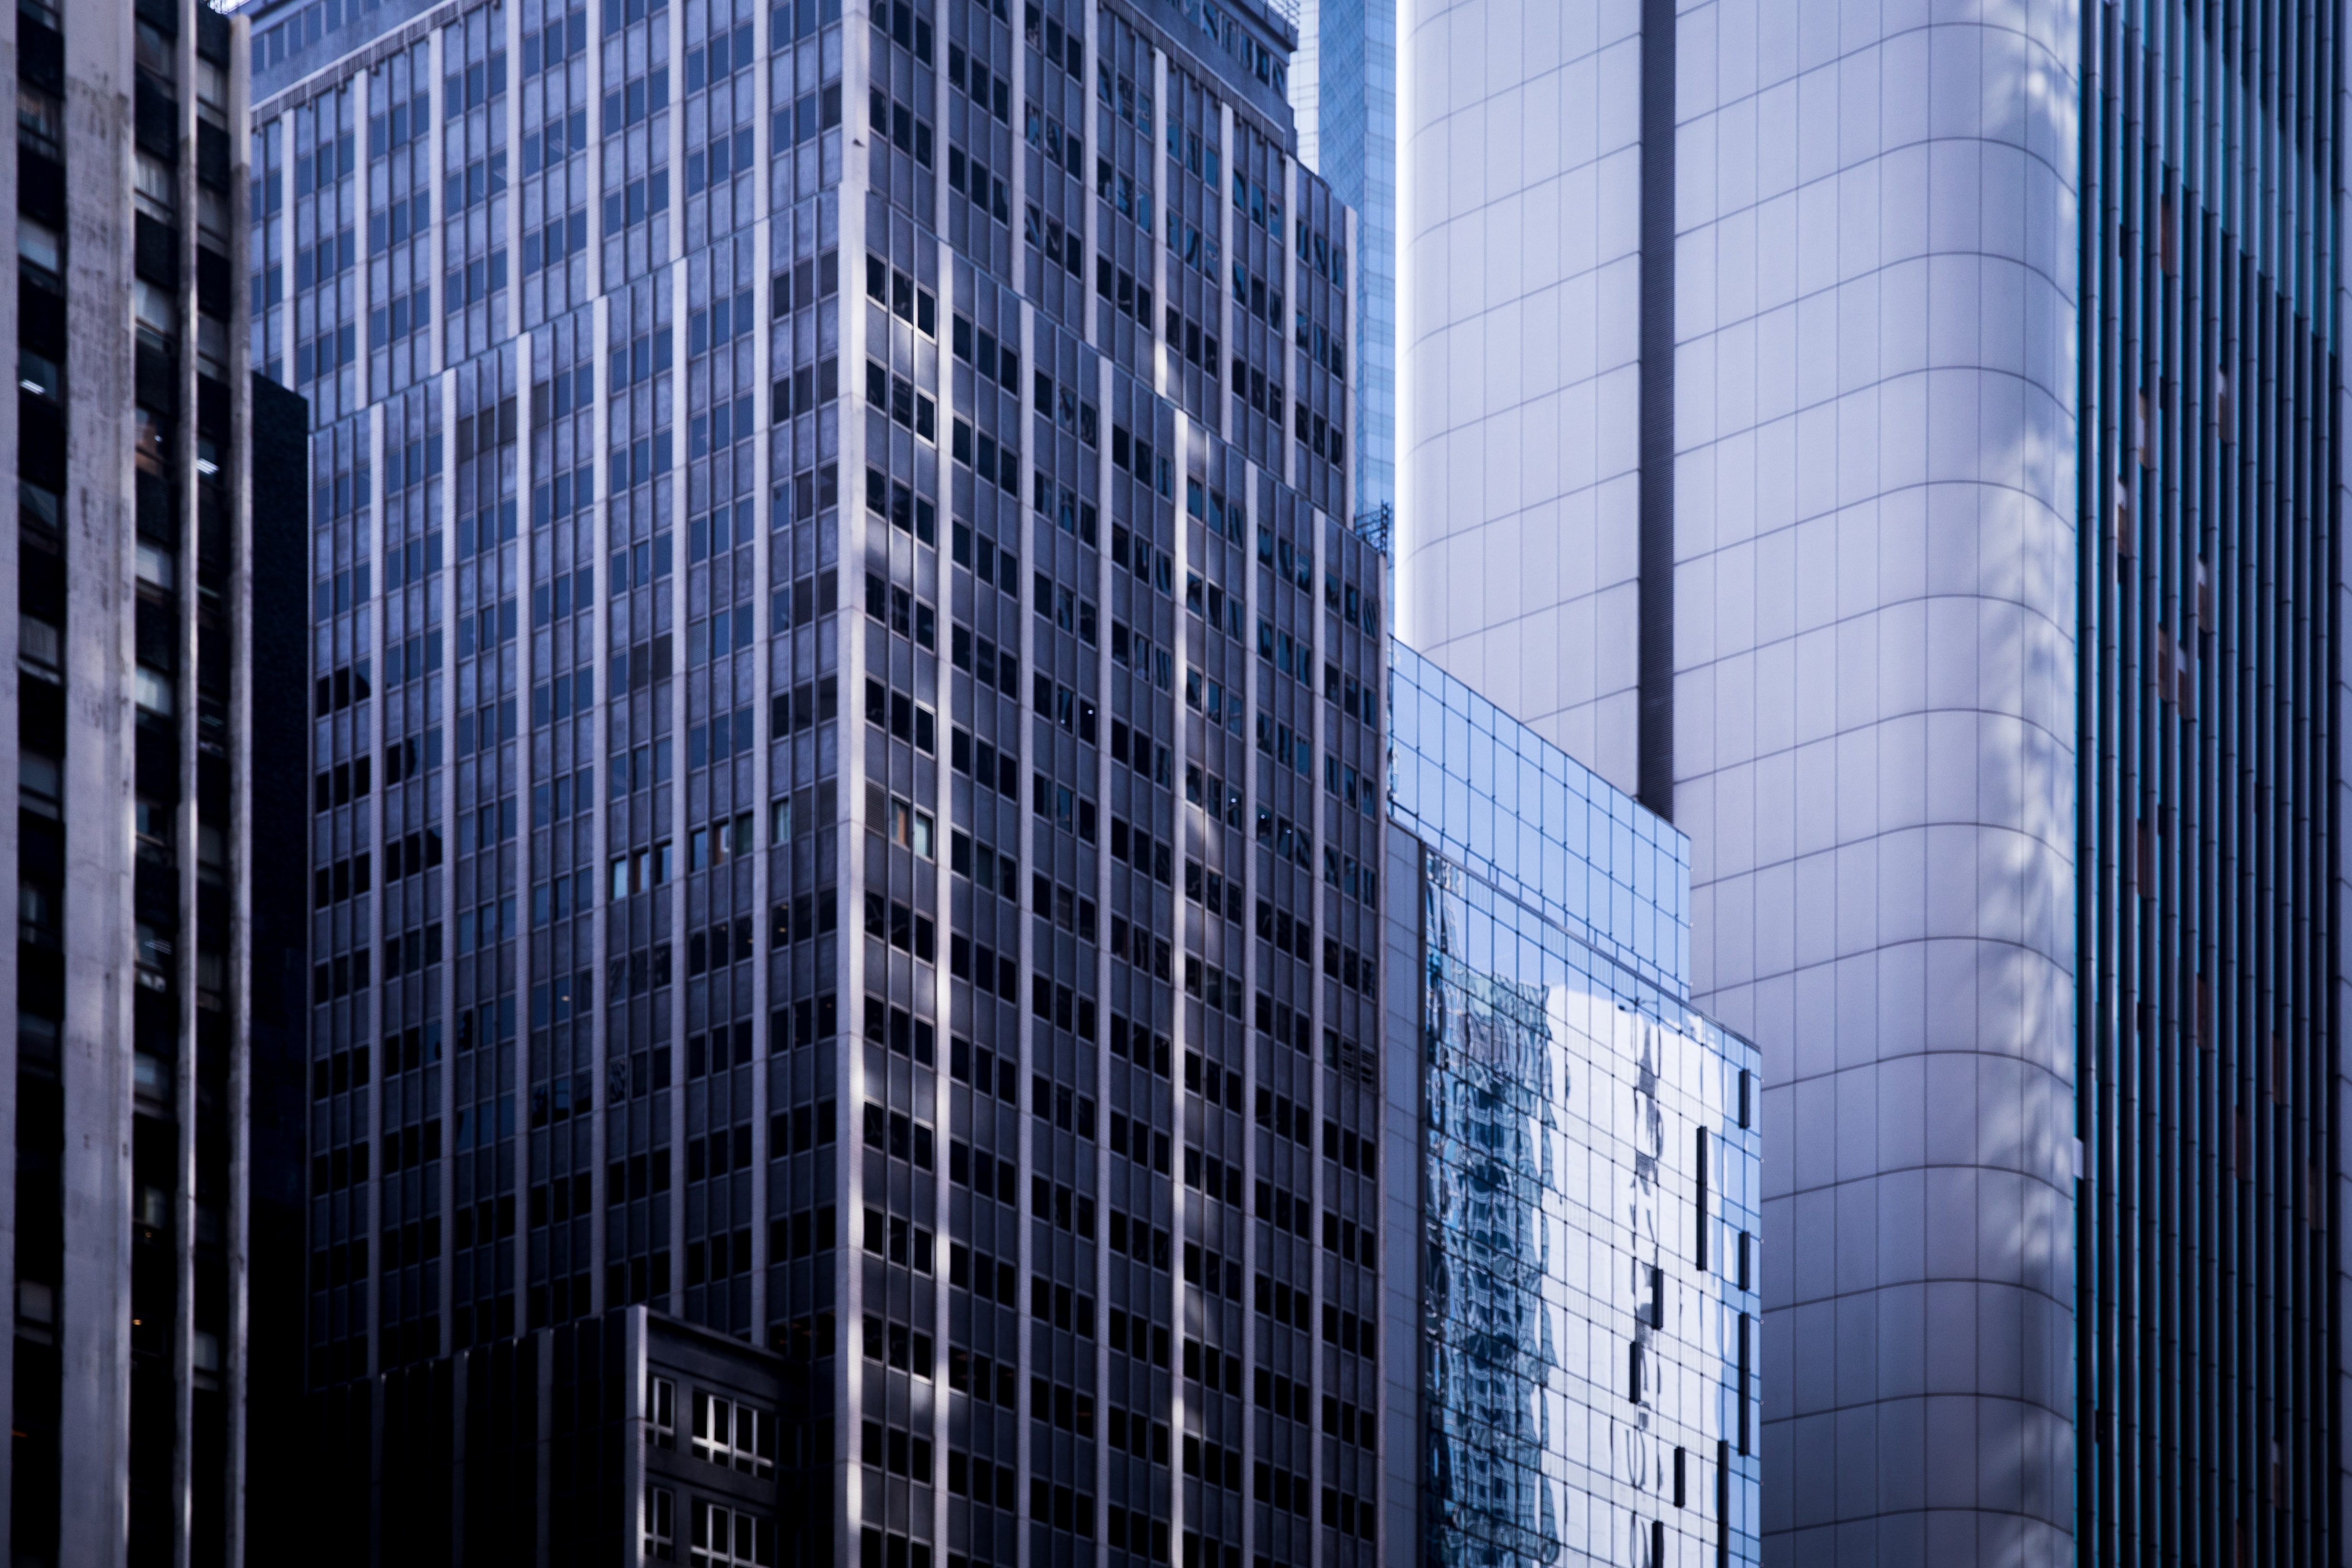 glass high-rise buildings